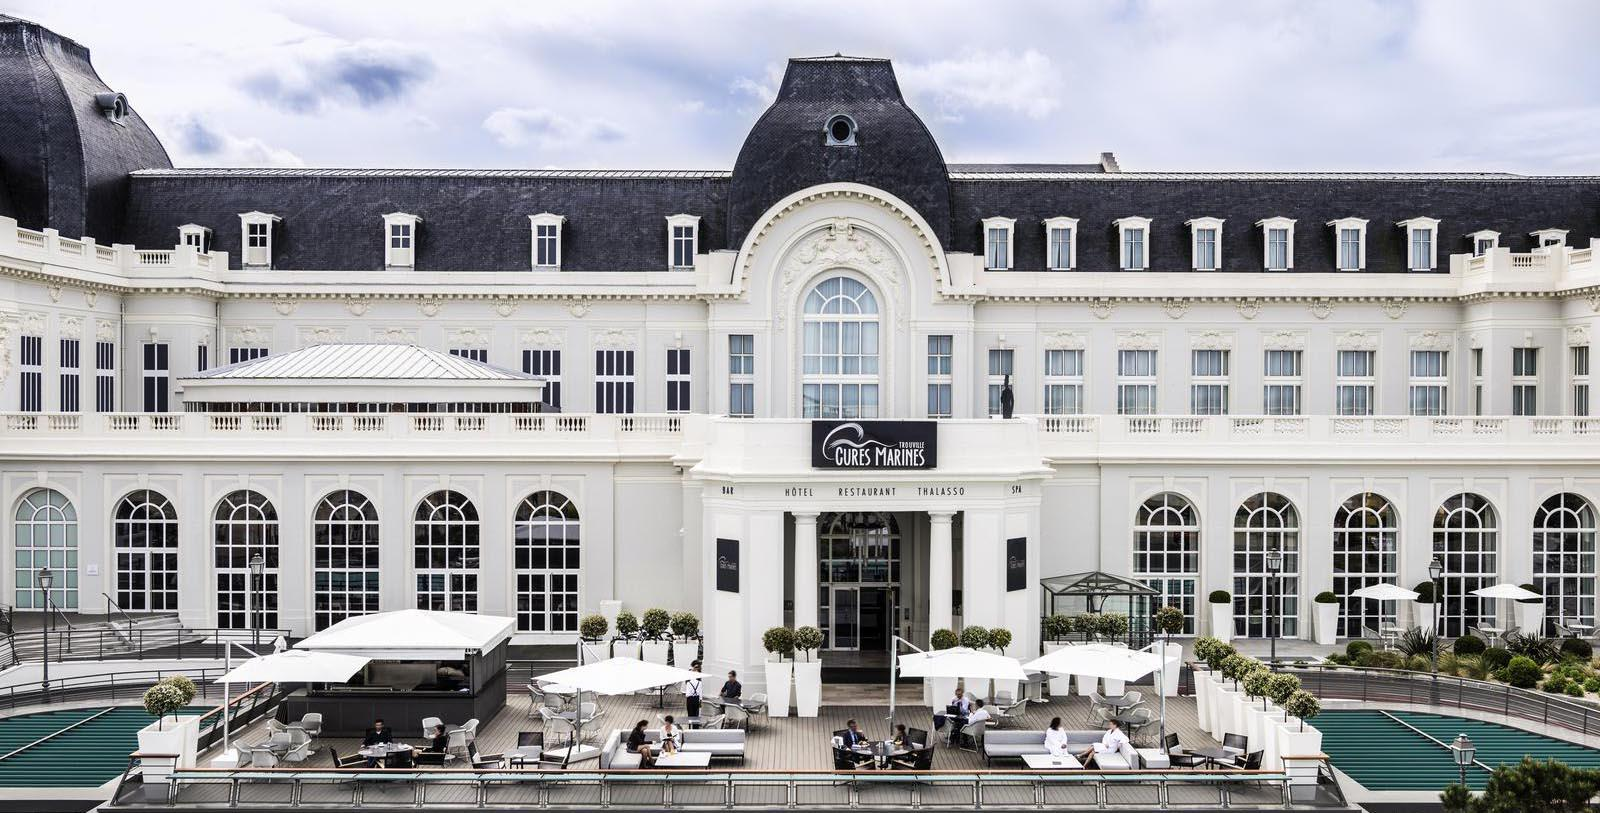 Image of hotel exterior Cures Marines Trouville Hôtel Thalasso & Spa-MGallery by Sofitel, 1912, Member of Historic Hotels Worldwide, Trouville-sur-Mer, Overview